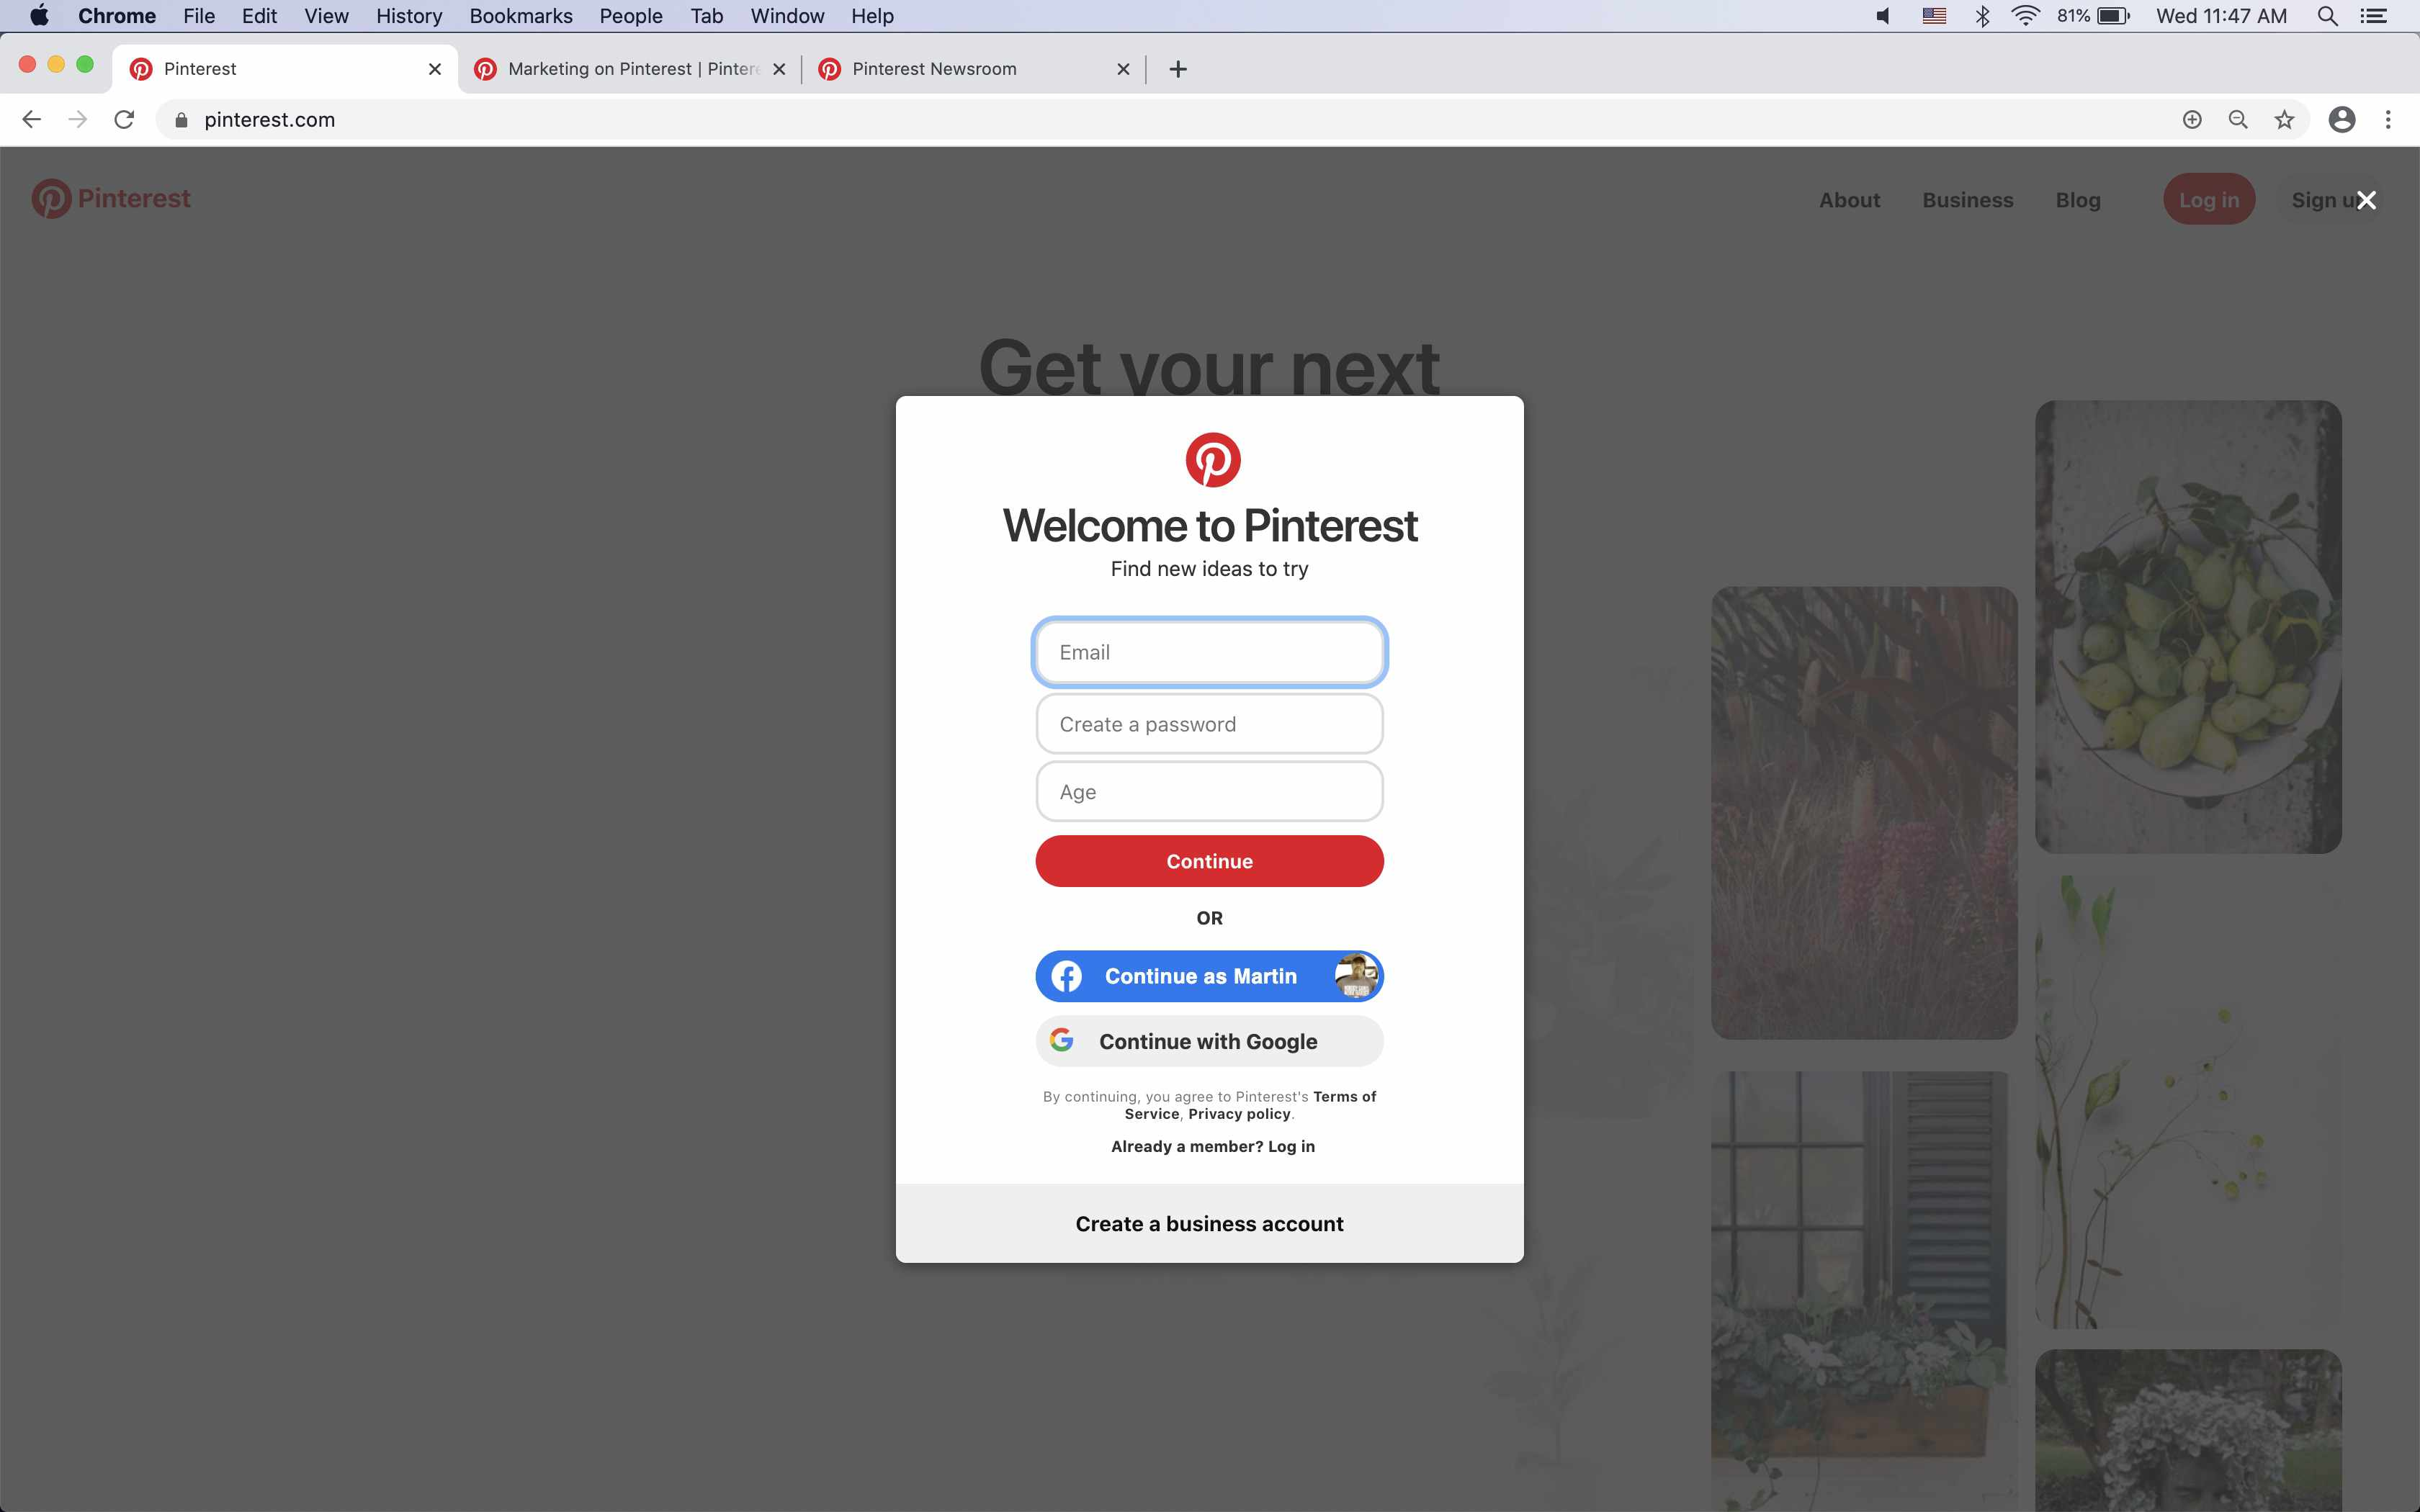 Enter email, password, and age to create a Pinterest account